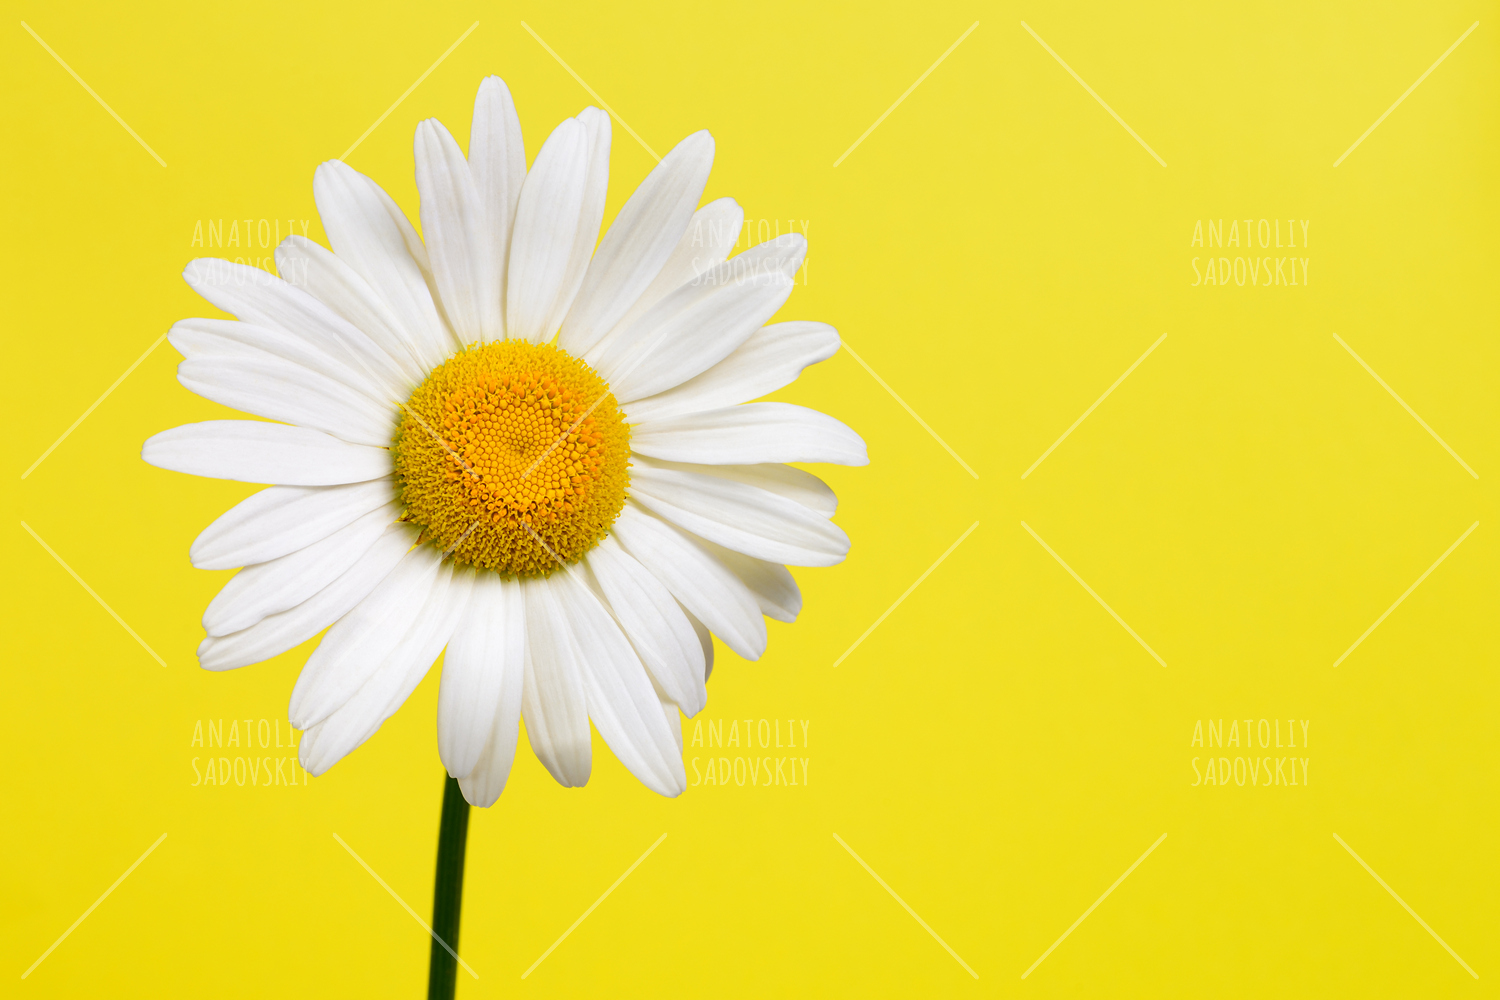 Daisy flower on yellow background by wi design bundles daisy flower on yellow background example image 1 mightylinksfo